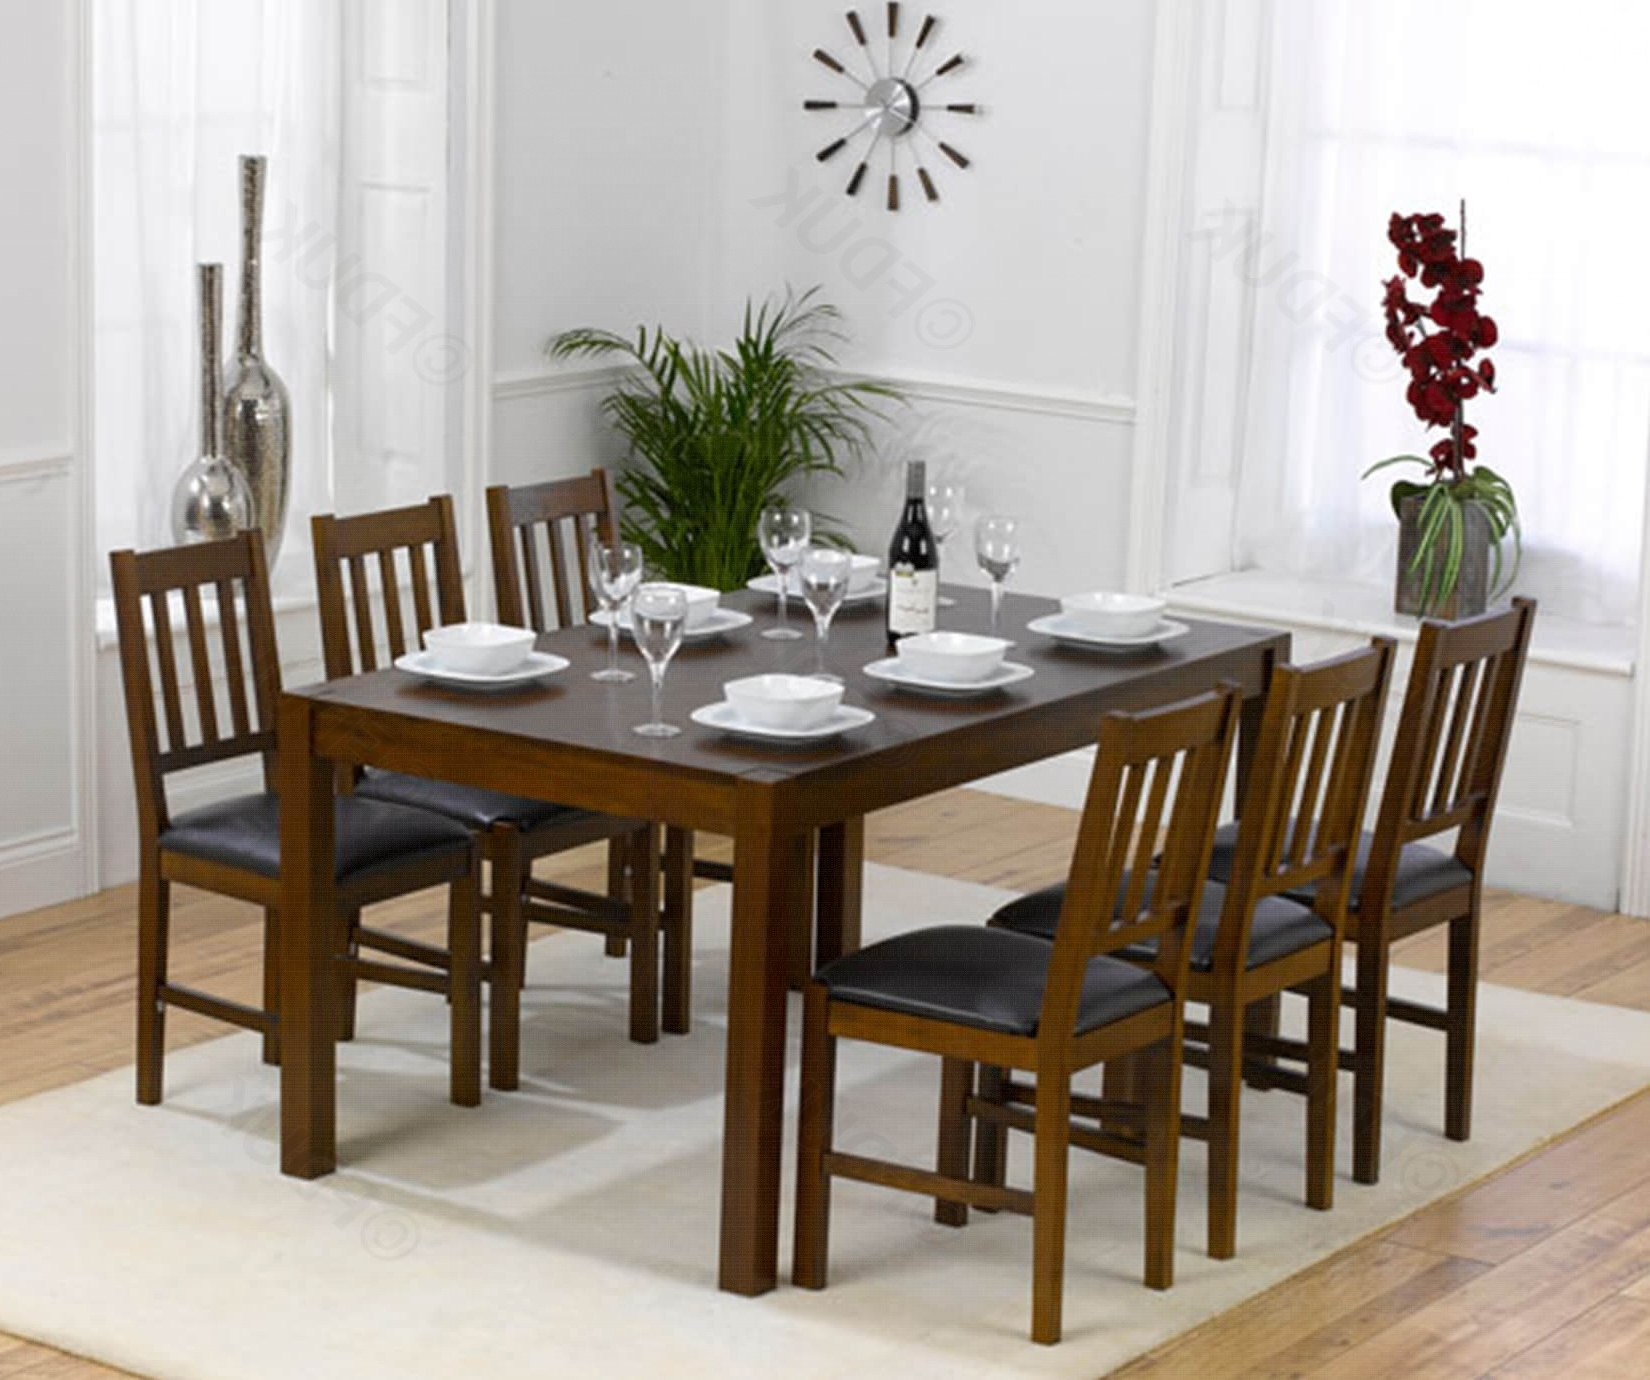 Marbella Solid Dark Oak Dining Table With 6 With Regard To Dark Wood Dining Tables 6 Chairs (View 19 of 25)